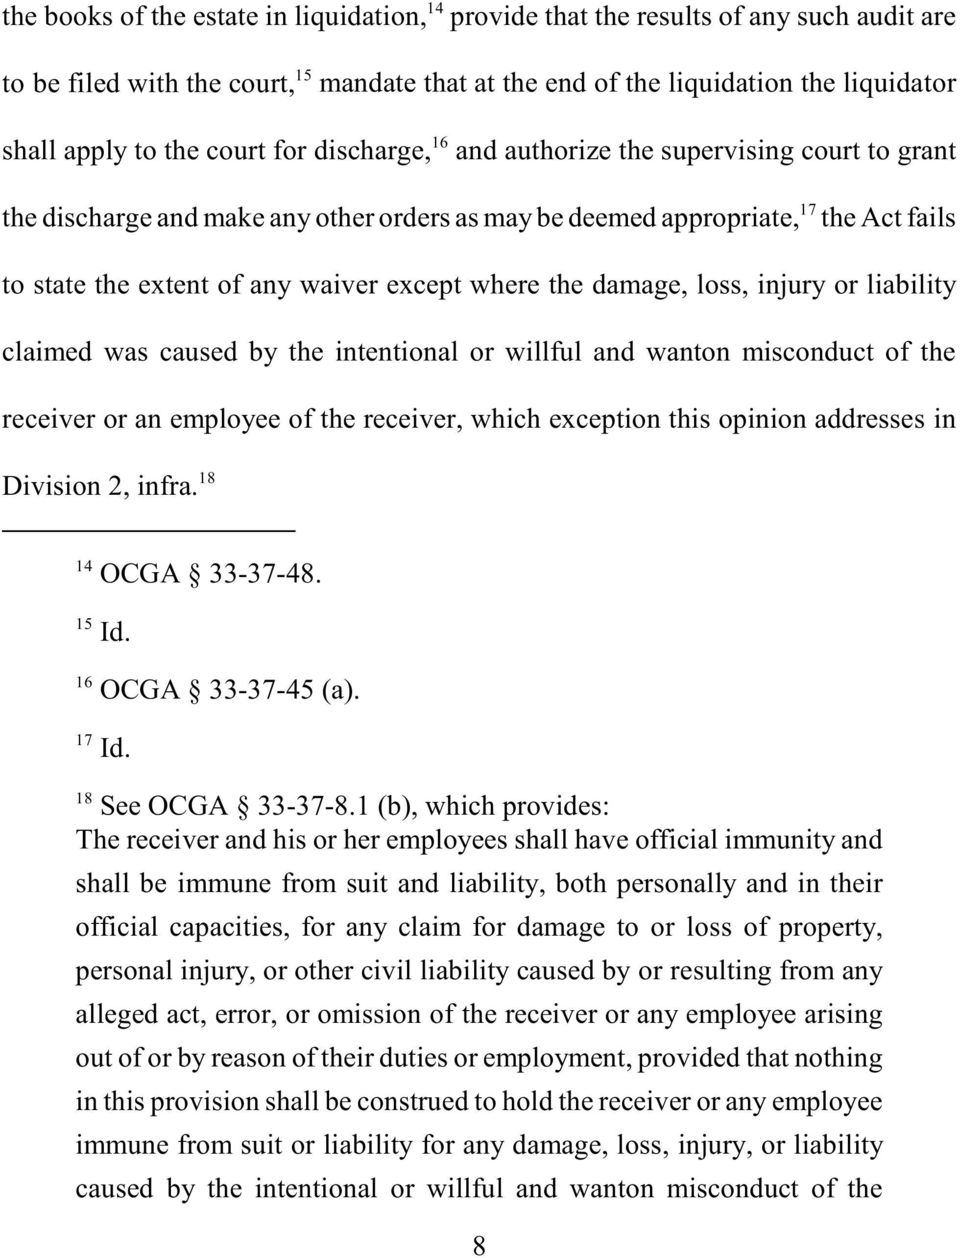 where the damage, loss, injury or liability claimed was caused by the intentional or willful and wanton misconduct of the receiver or an employee of the receiver, which exception this opinion